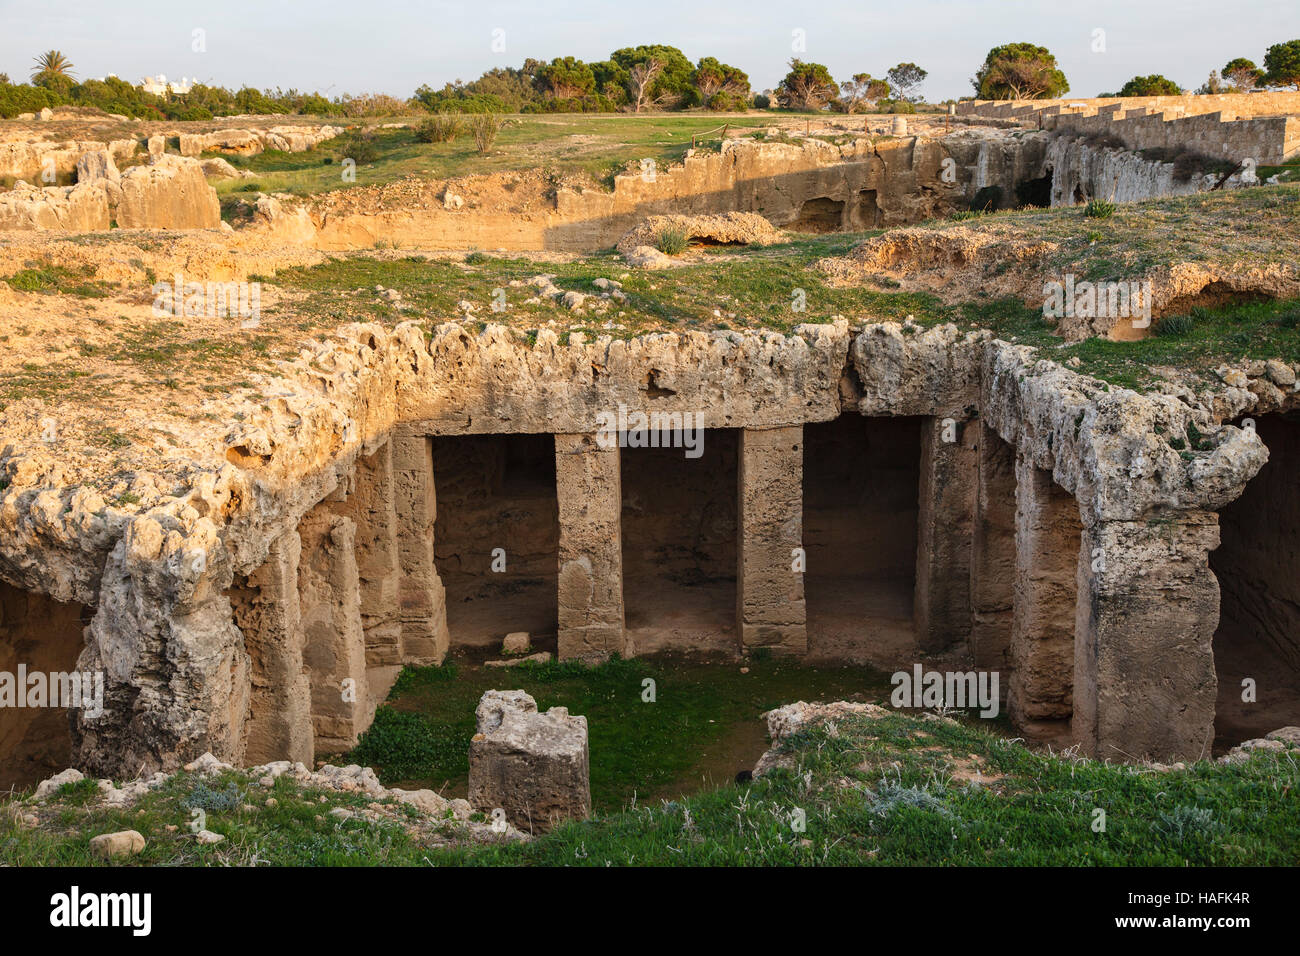 Tombs of the Kings, Paphos, Cyprus - Stock Image